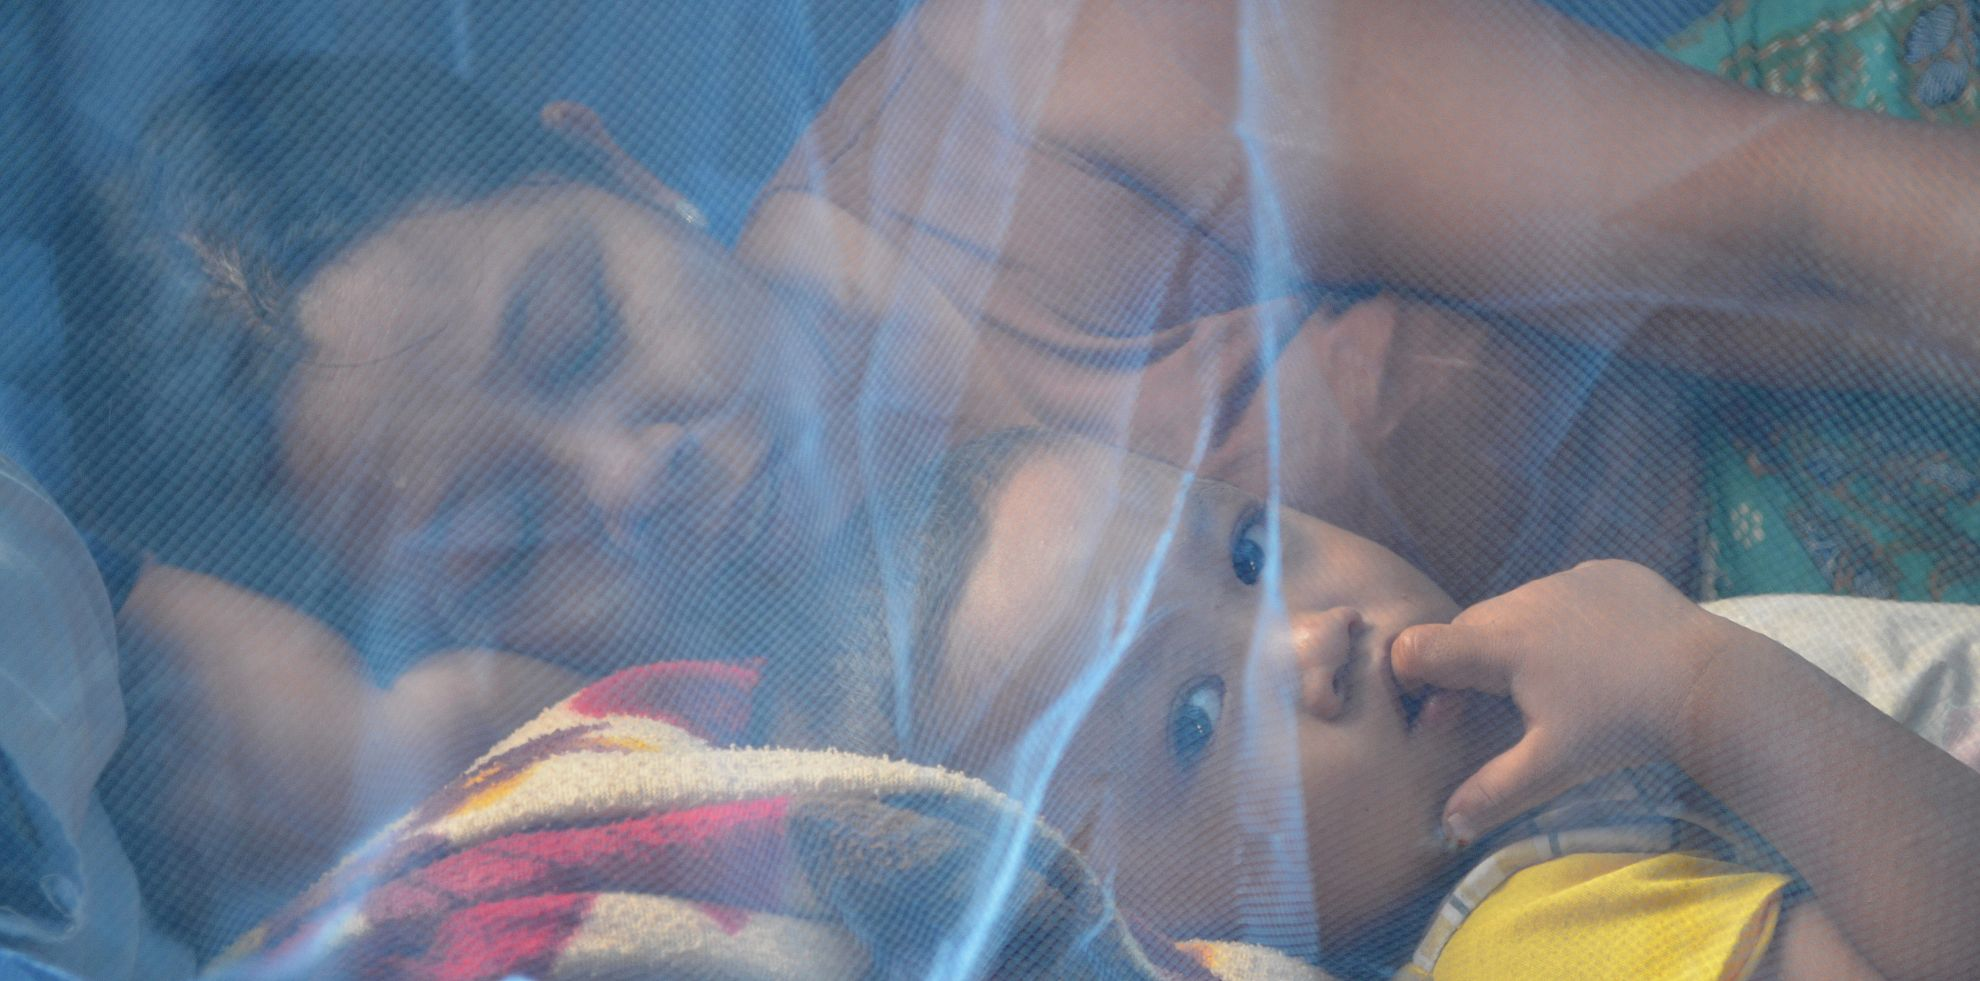 Latest News Malaria consortium agrees new partnership with myanmar government